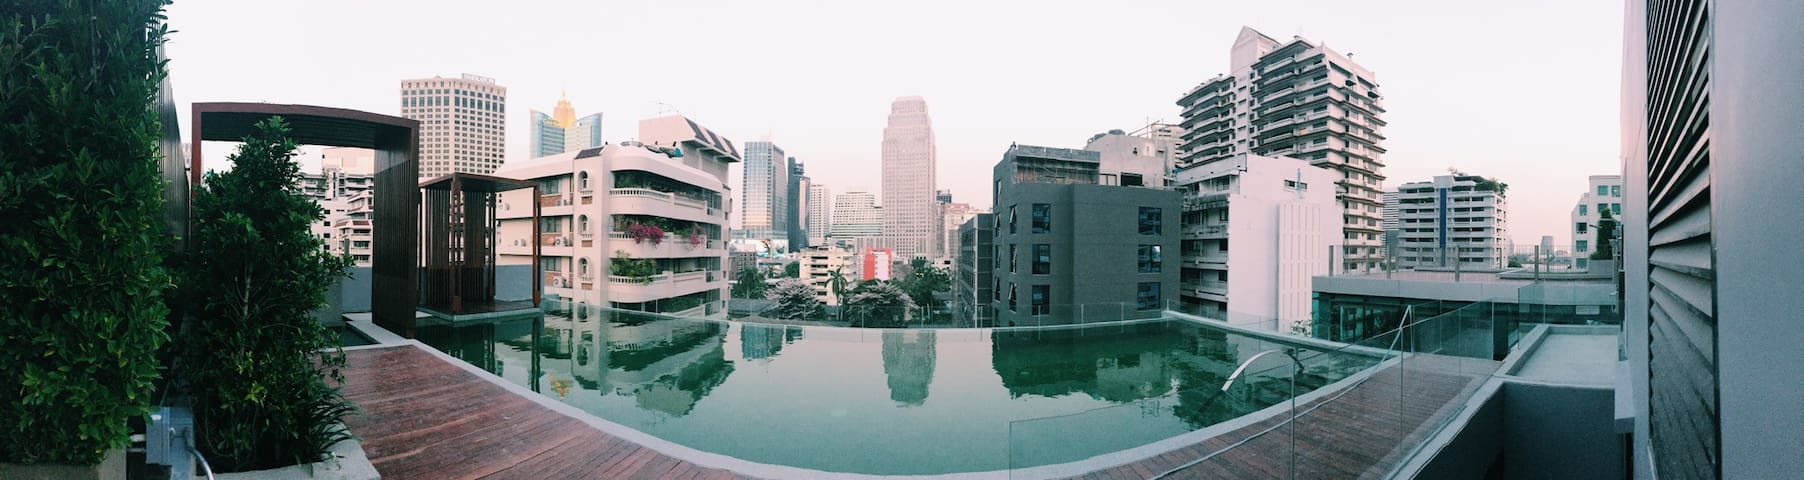 BANGKOK HEART Nana Sukhumvit with infinite pool - 曼谷 - Leilighet